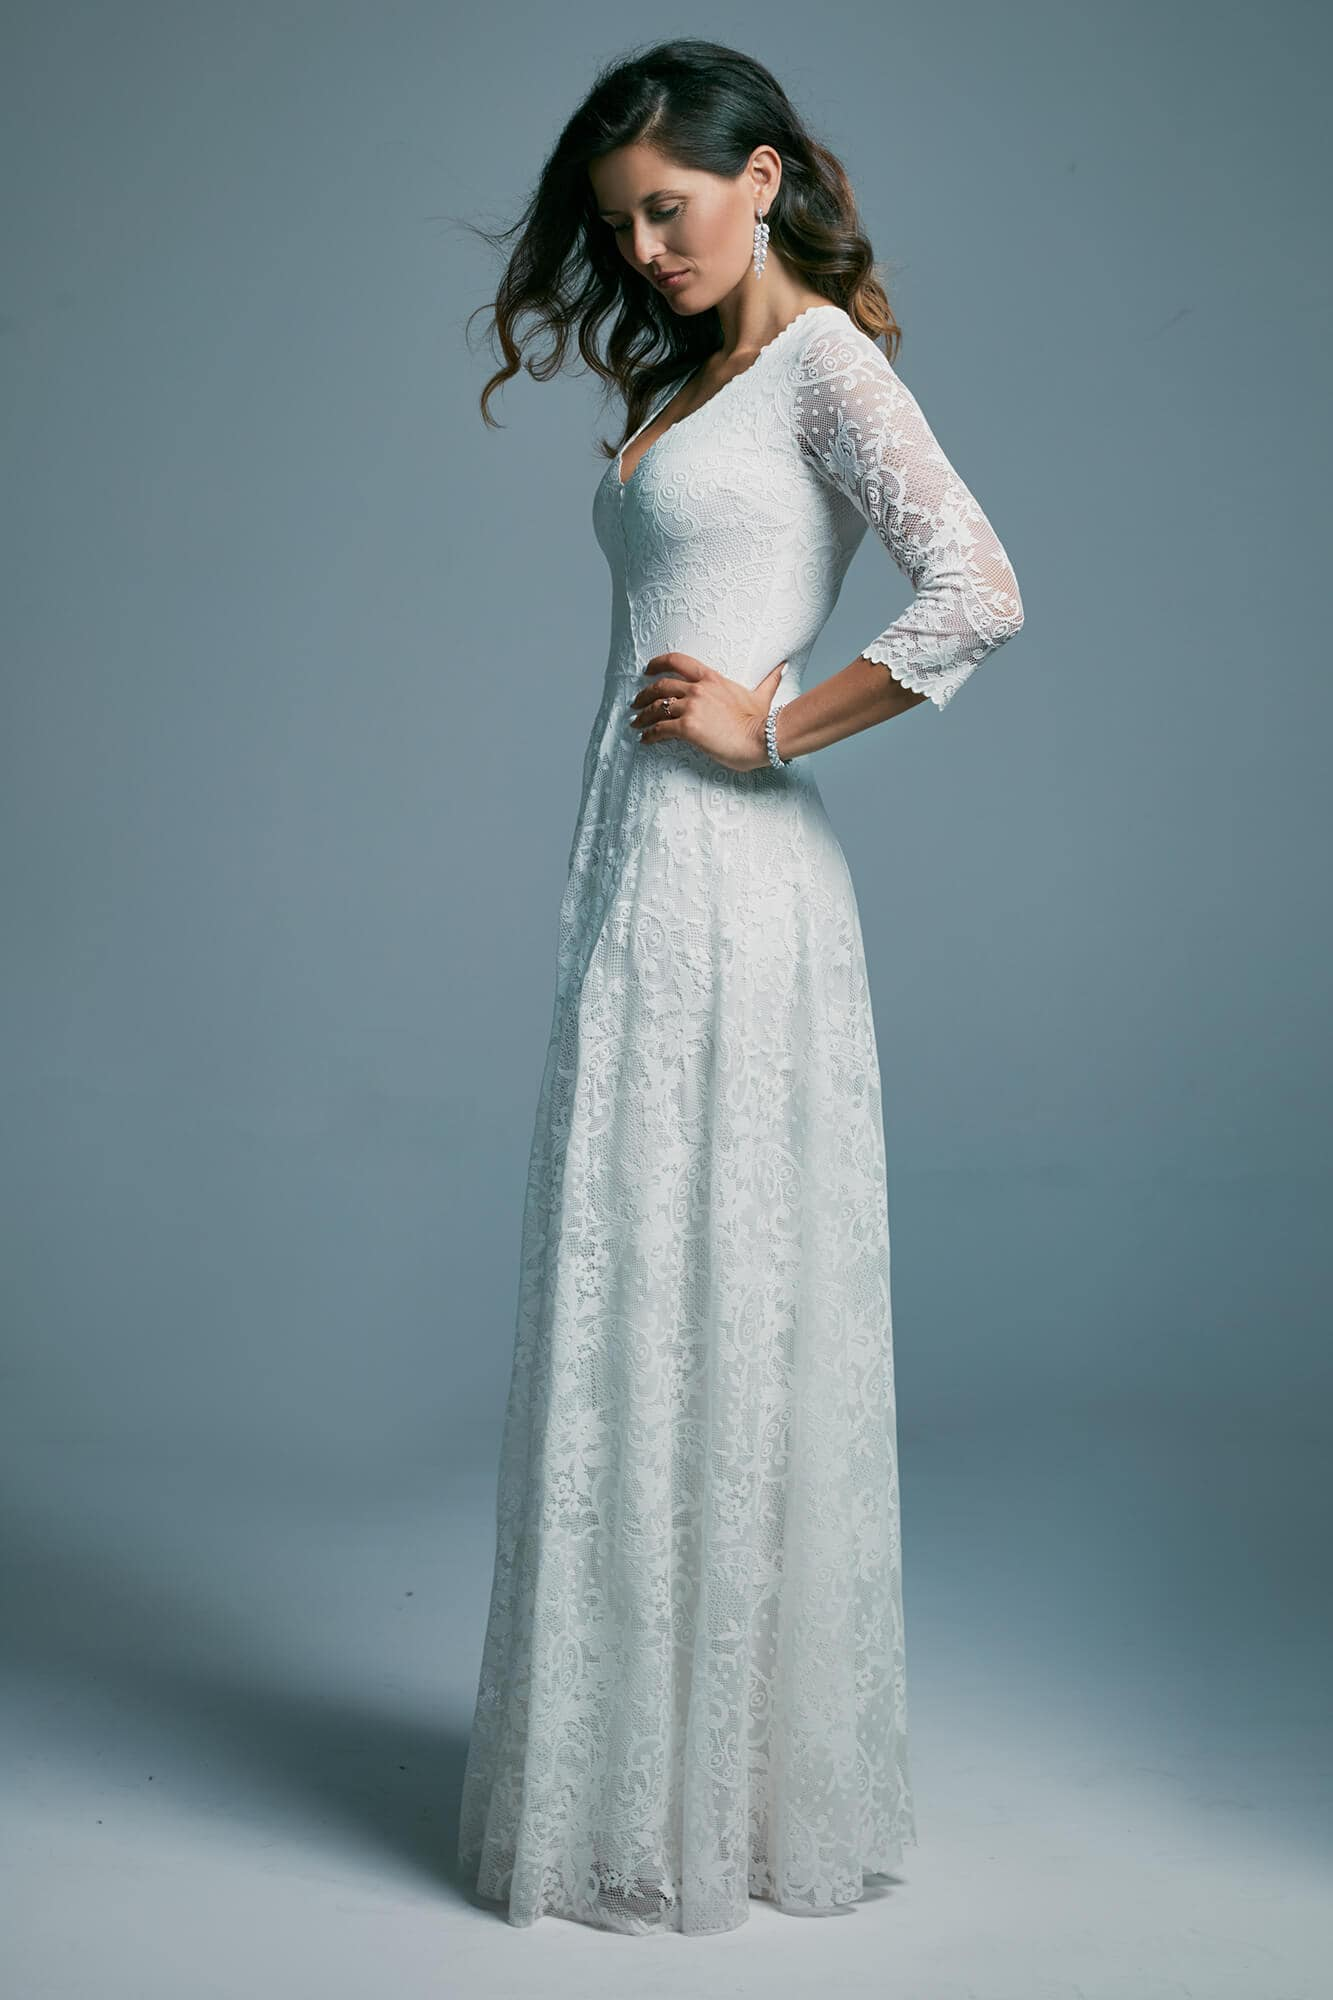 Lace wedding dress with 3/4 sleeves and fitted back Porto 40